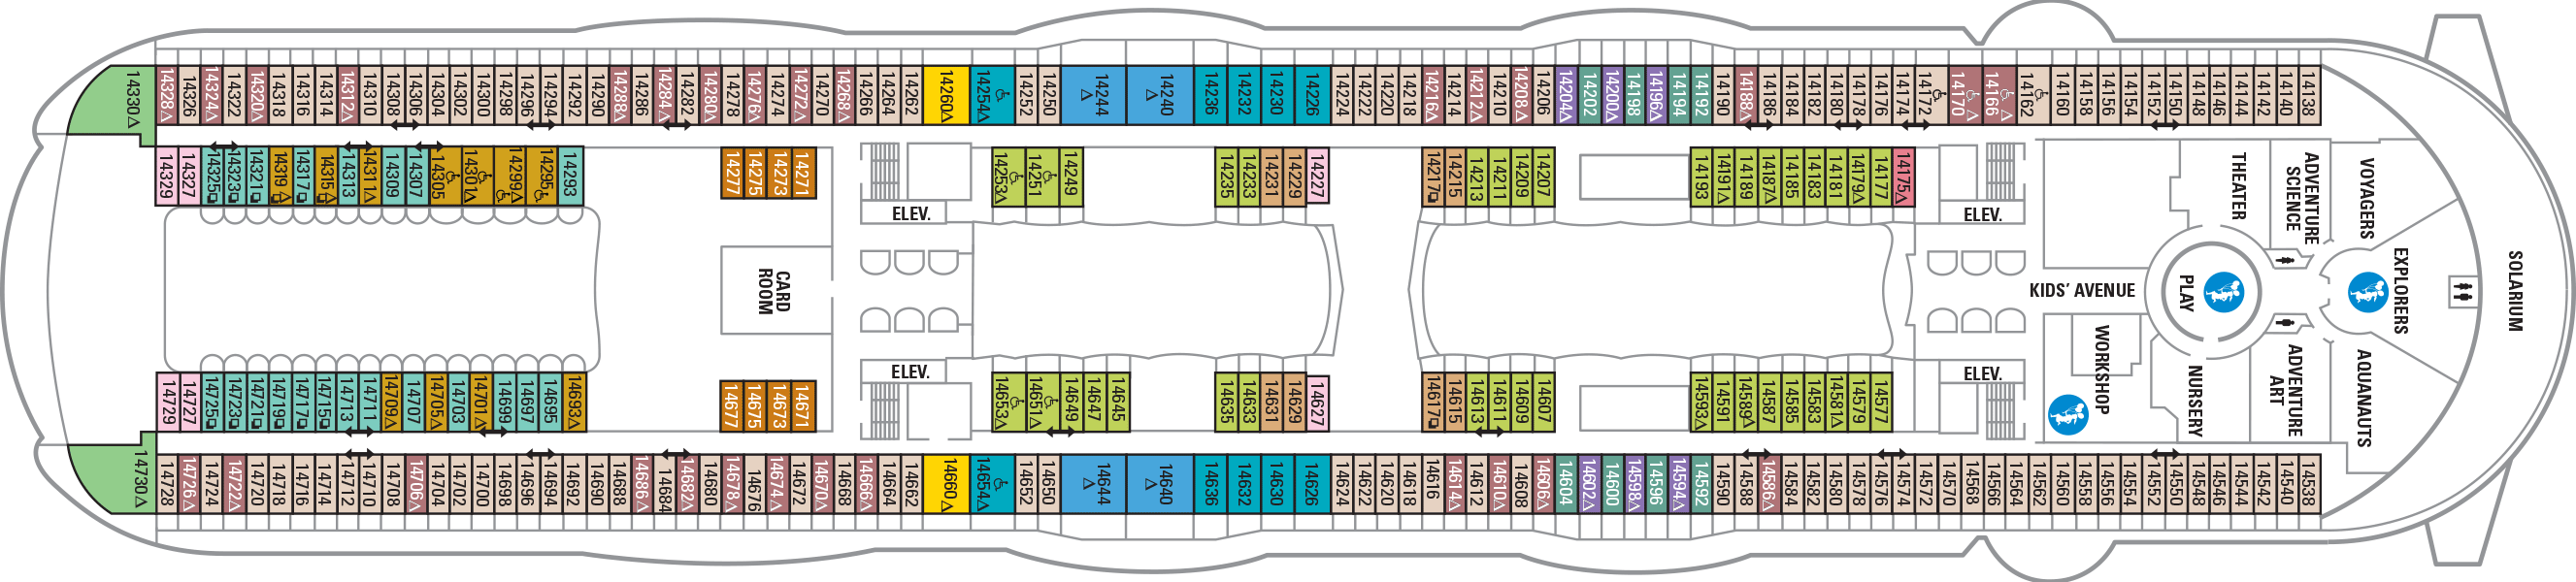 deck plans harmony of the seas